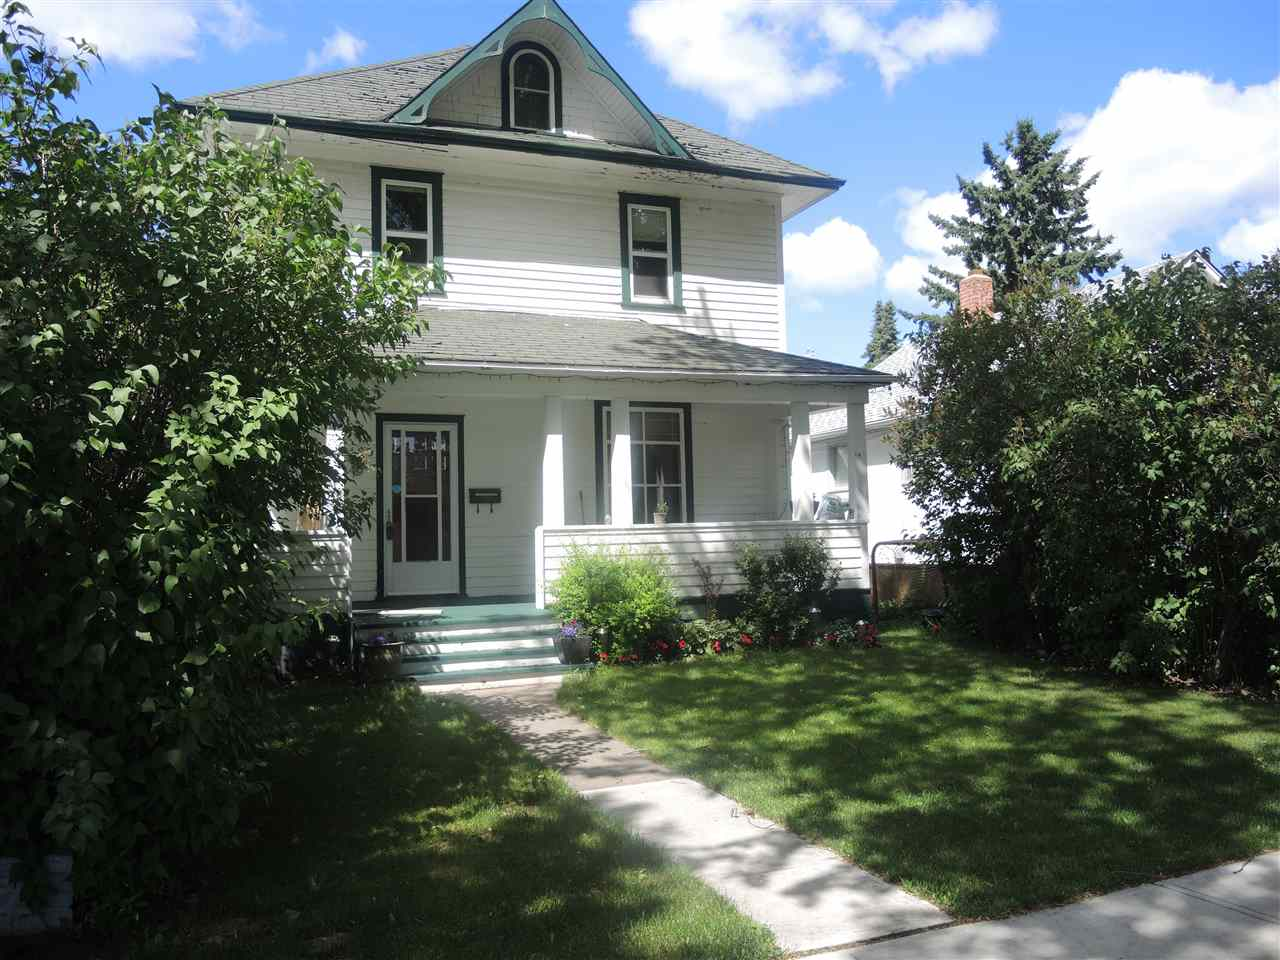 Character home in a fantastic location - 1 block from Millcreek Ravine, across from park and arena and curling rink